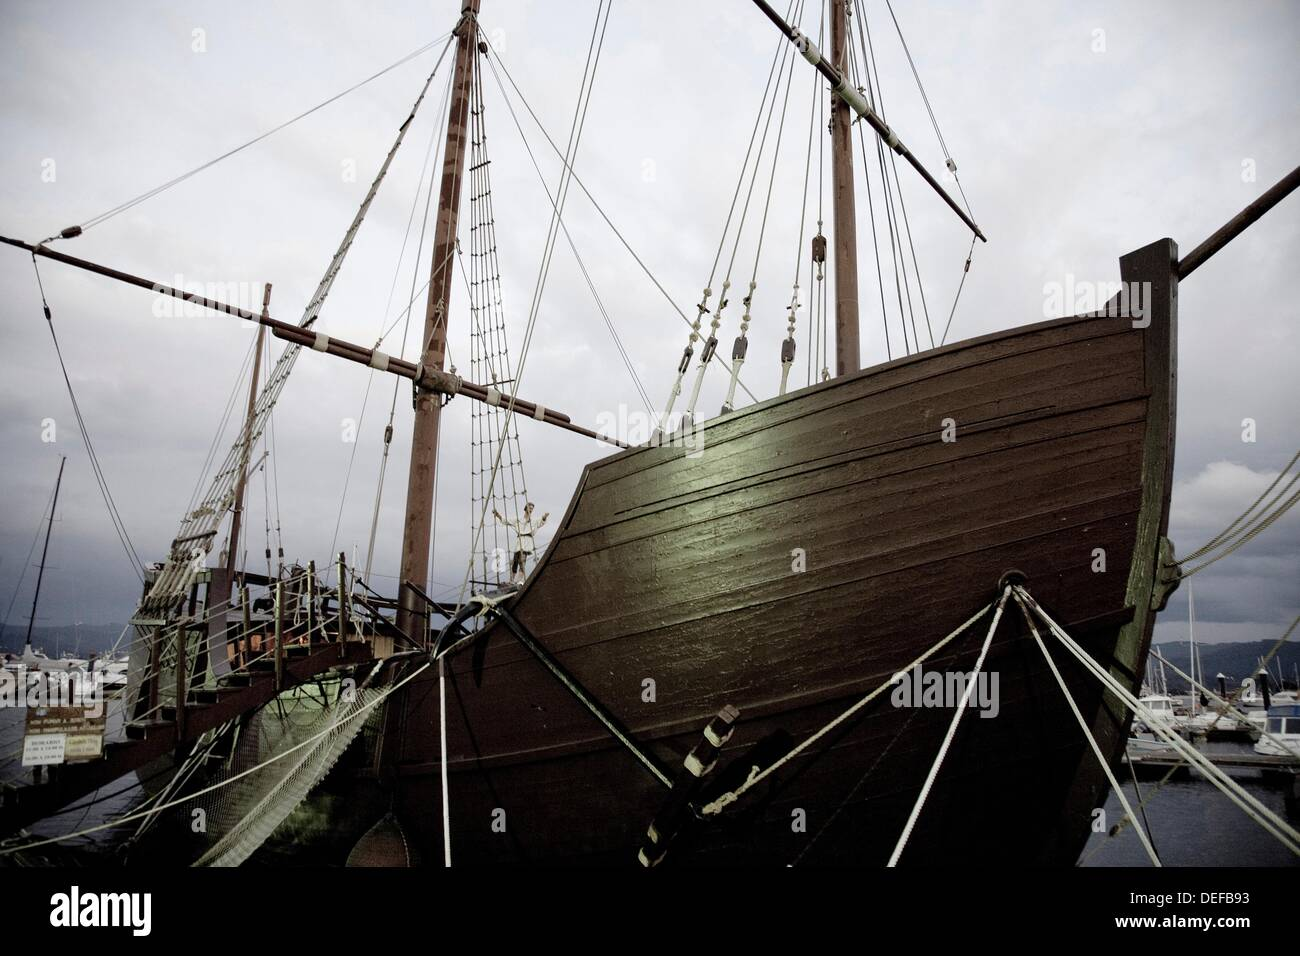 Replica of the caravel La Pinta used by Christopher Columbus in the discovery of America  Baiona  Galicia  Spain - Stock Image